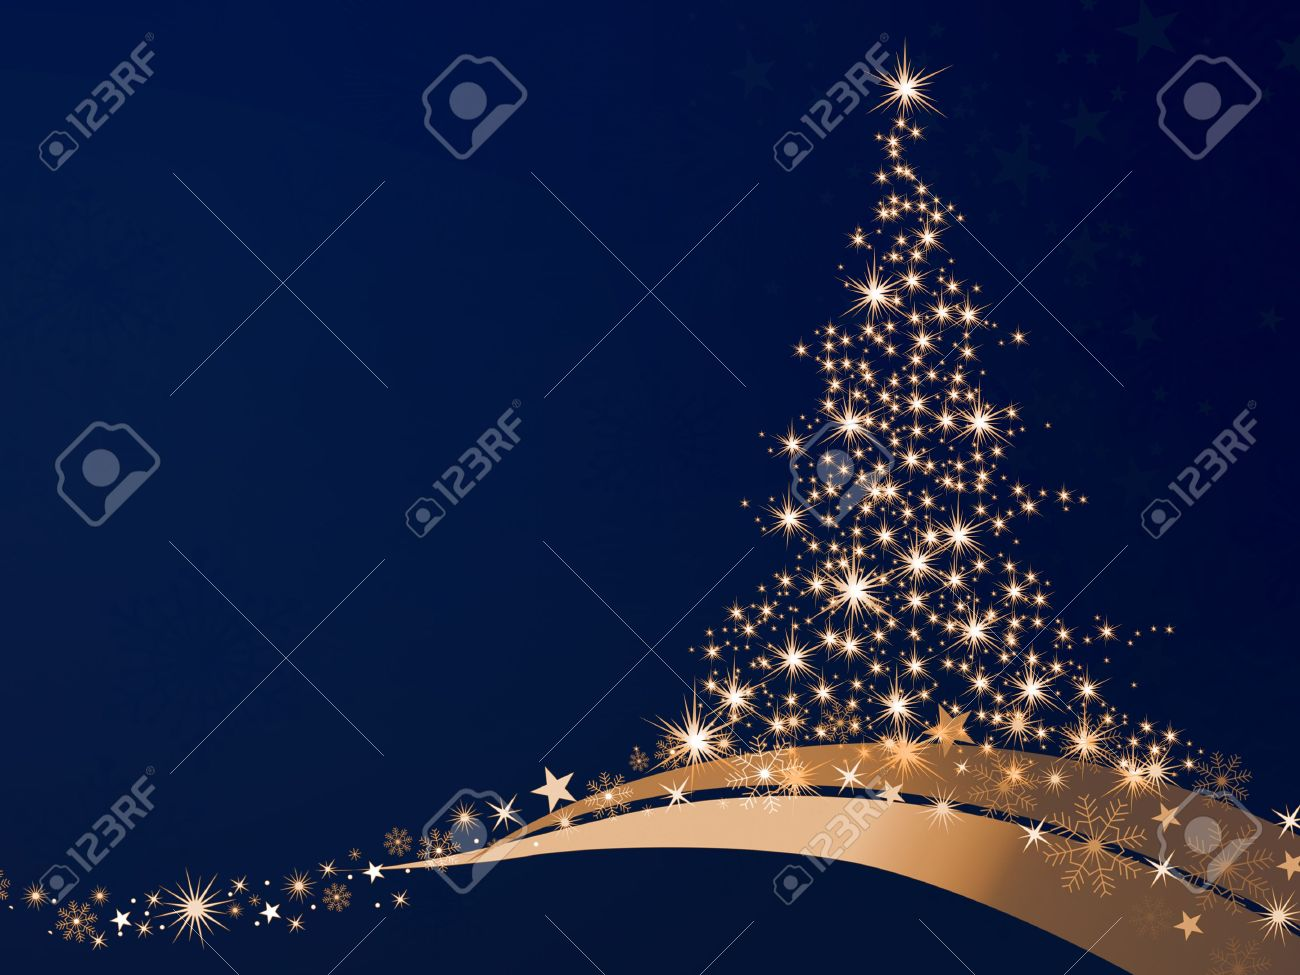 golden christmas tree of stars on a blue background Stock Photo - 11564136